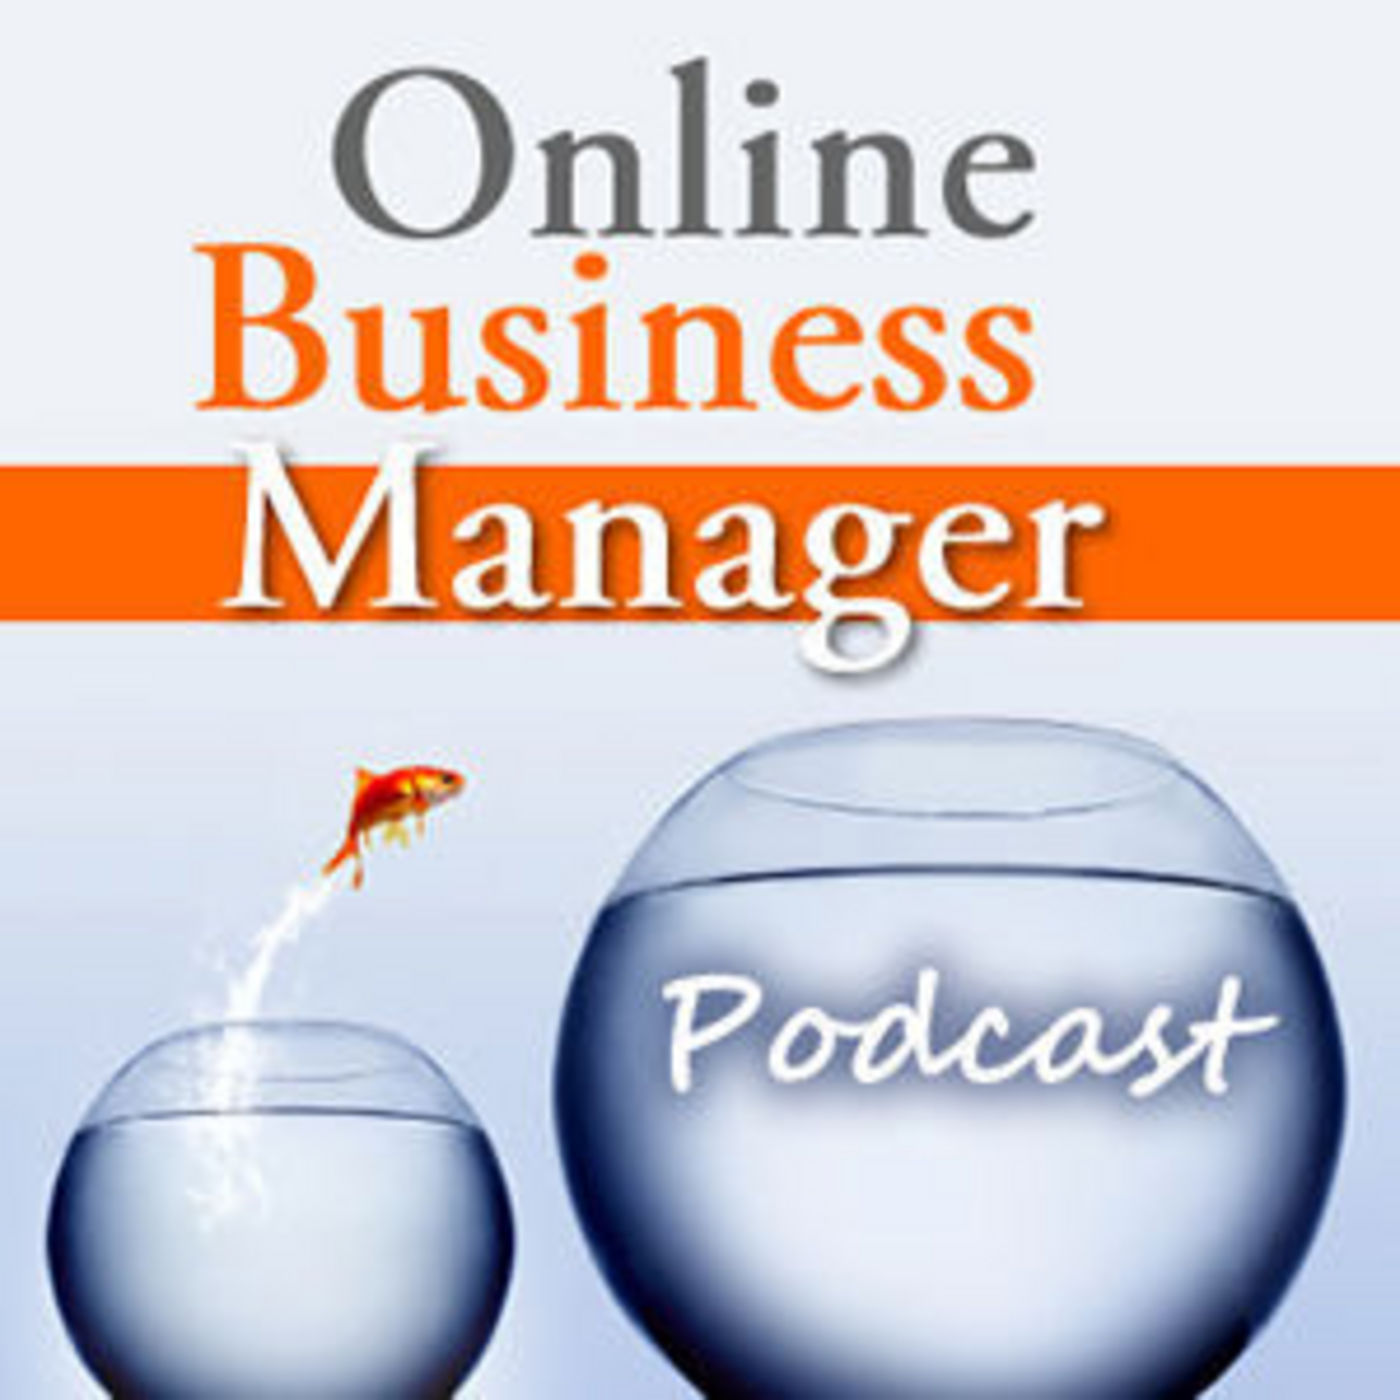 Online Business Manager Podcast